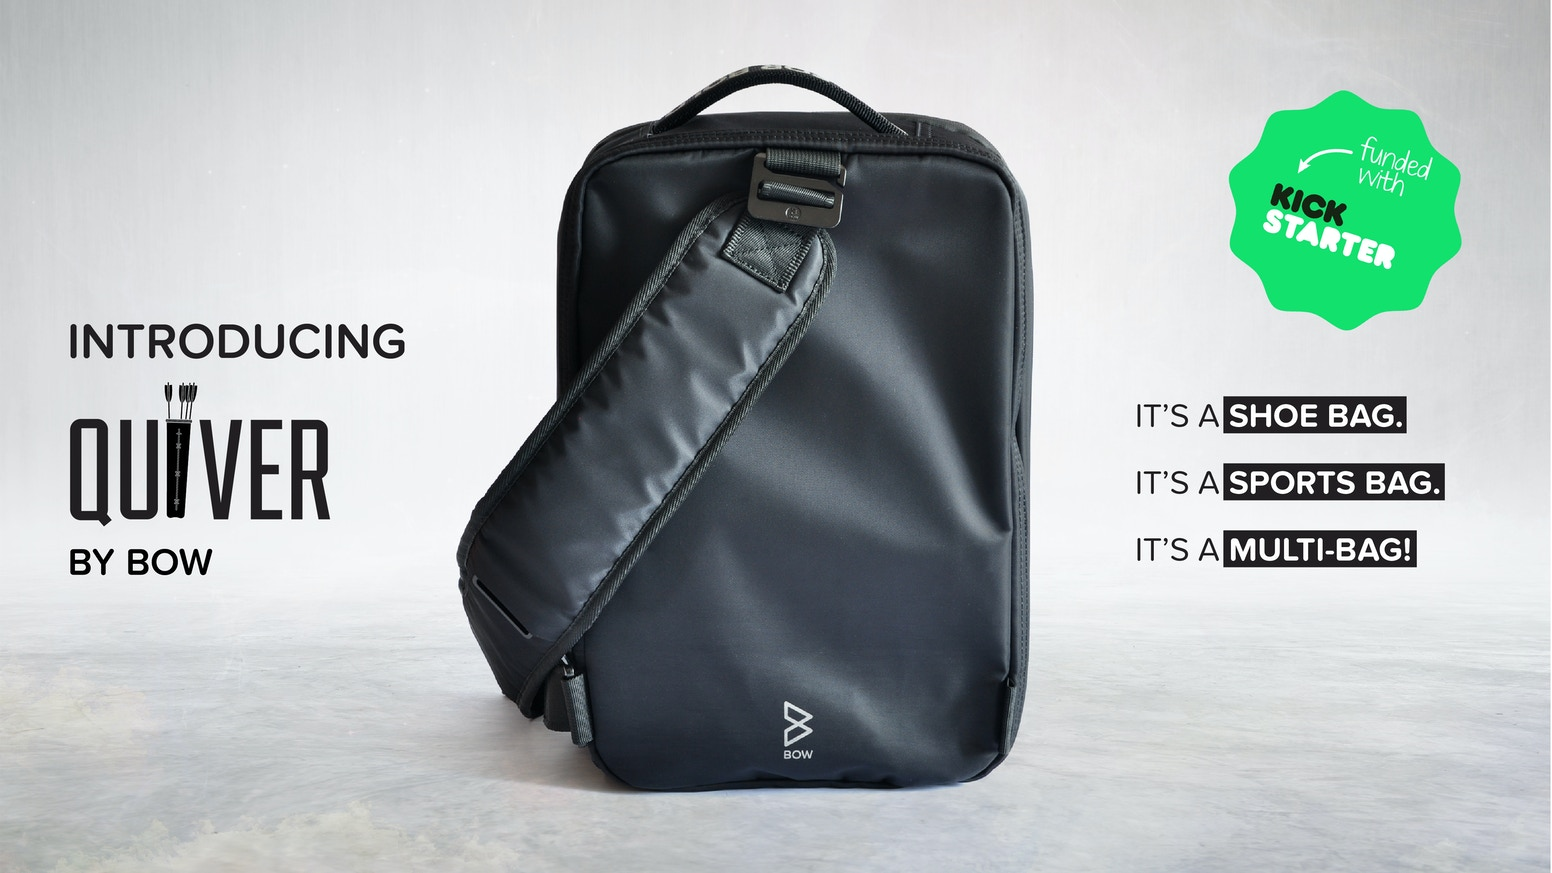 An all-in-one solution for your sports and travel needs.